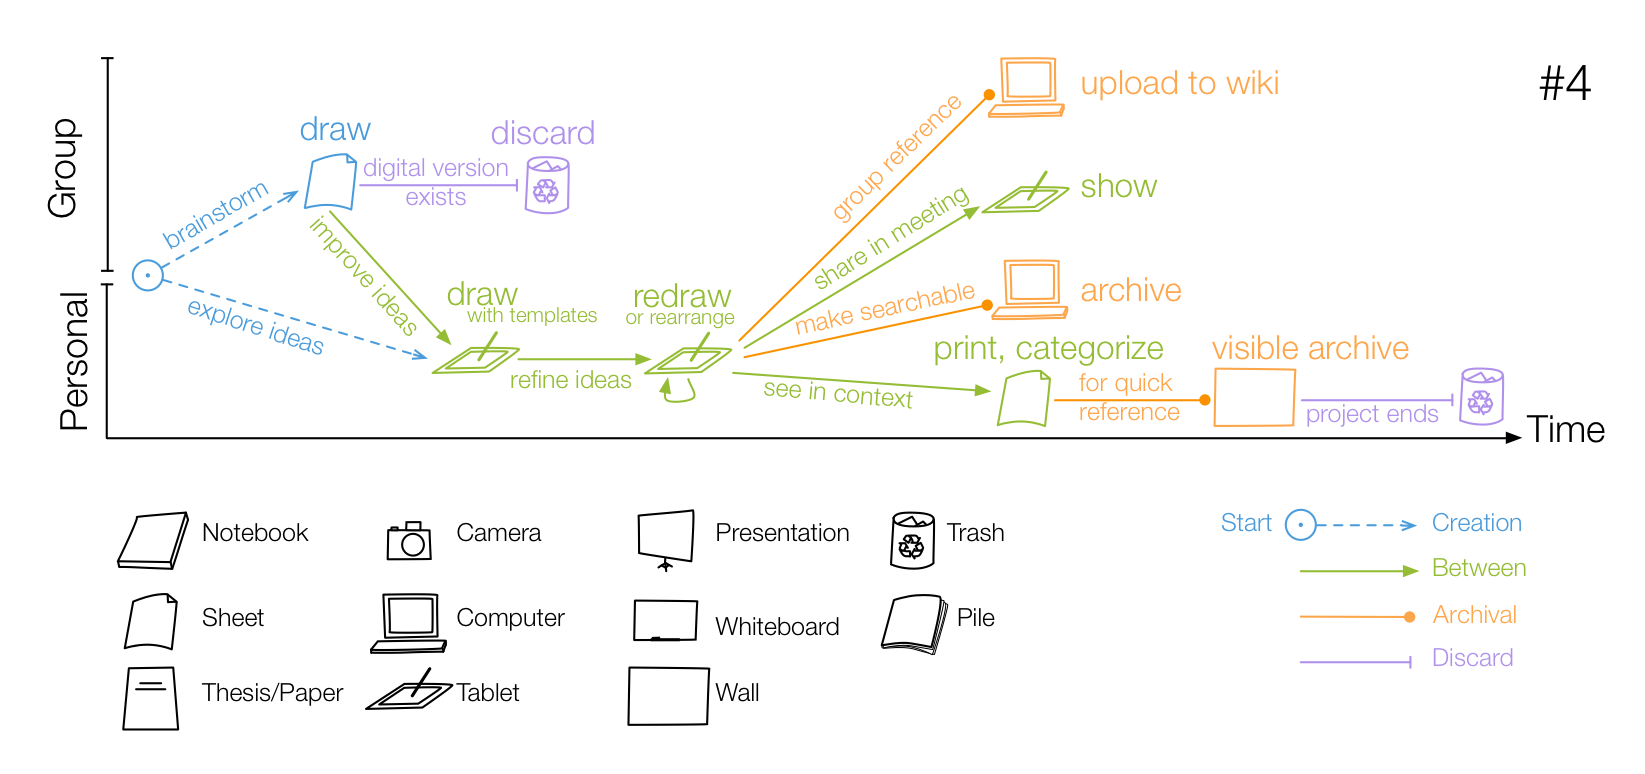 A sample sketch lifecycle derived from an interview with one participant.